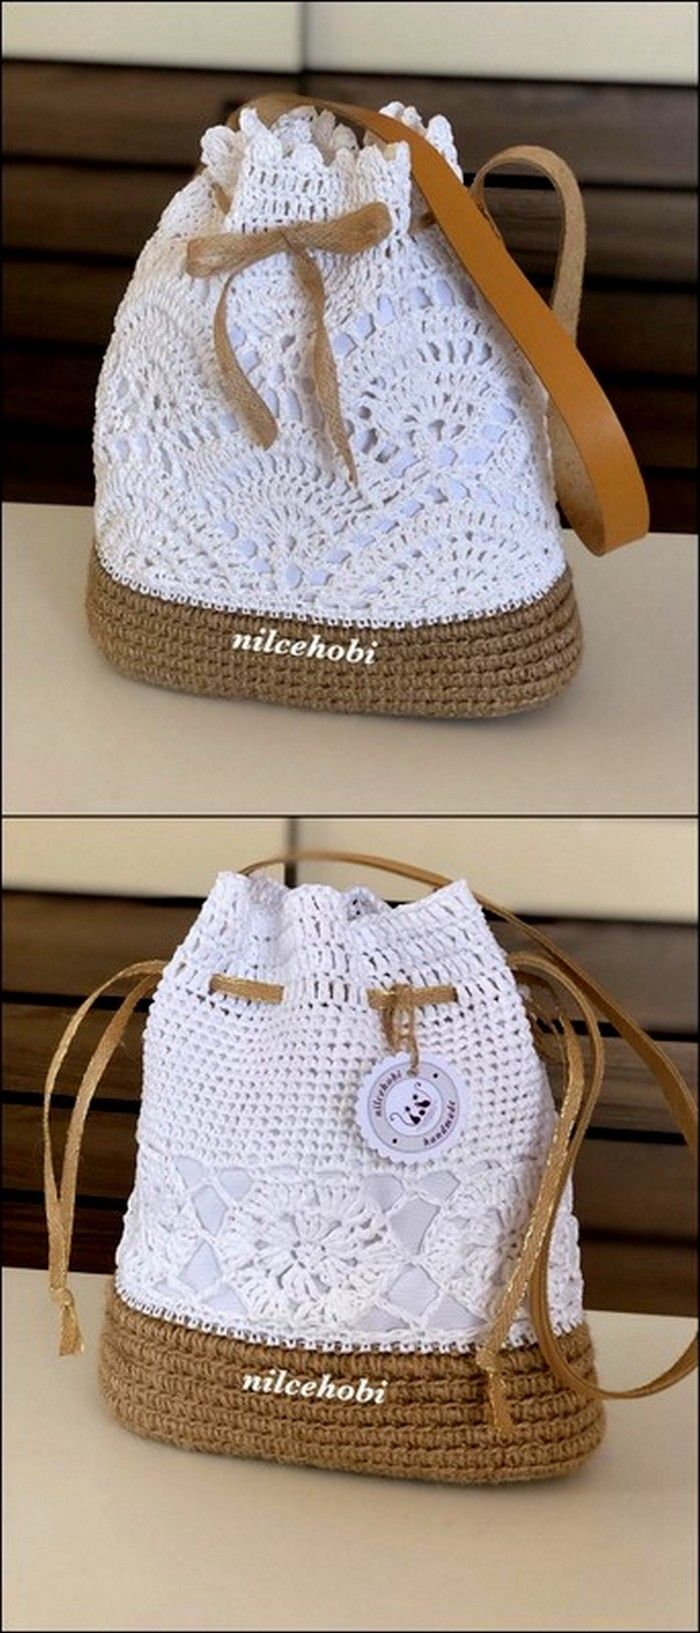 Stylish Strap bag Free Crochet Pattern